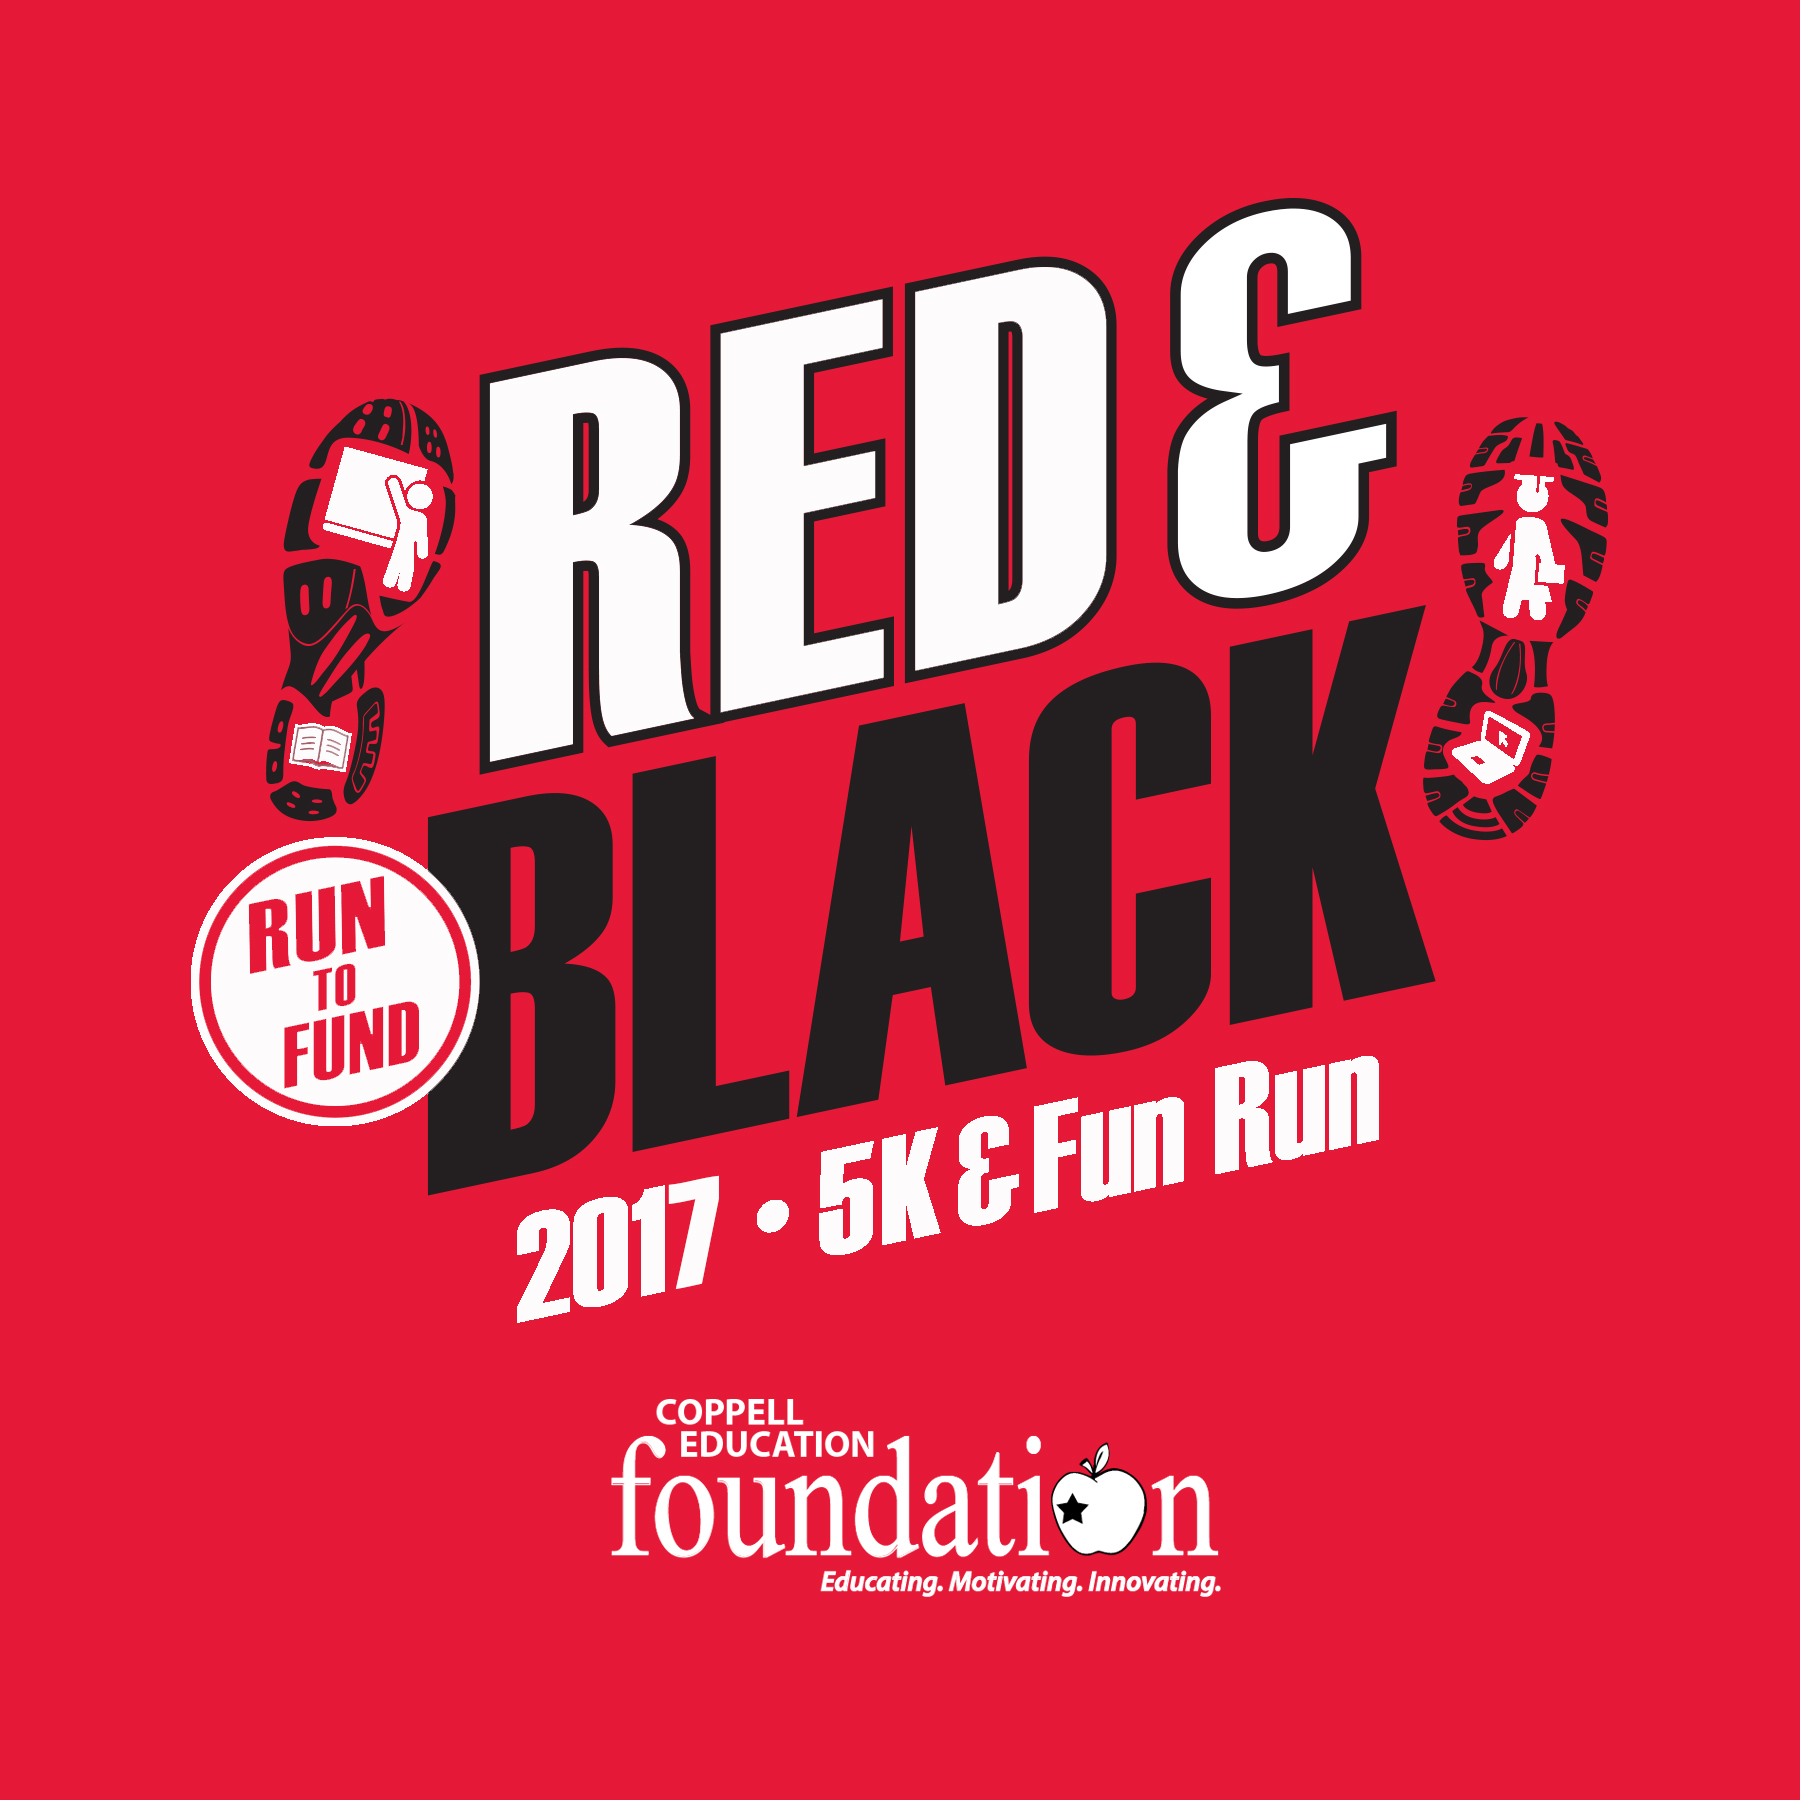 red-and-black-run-to-fund-sponsor